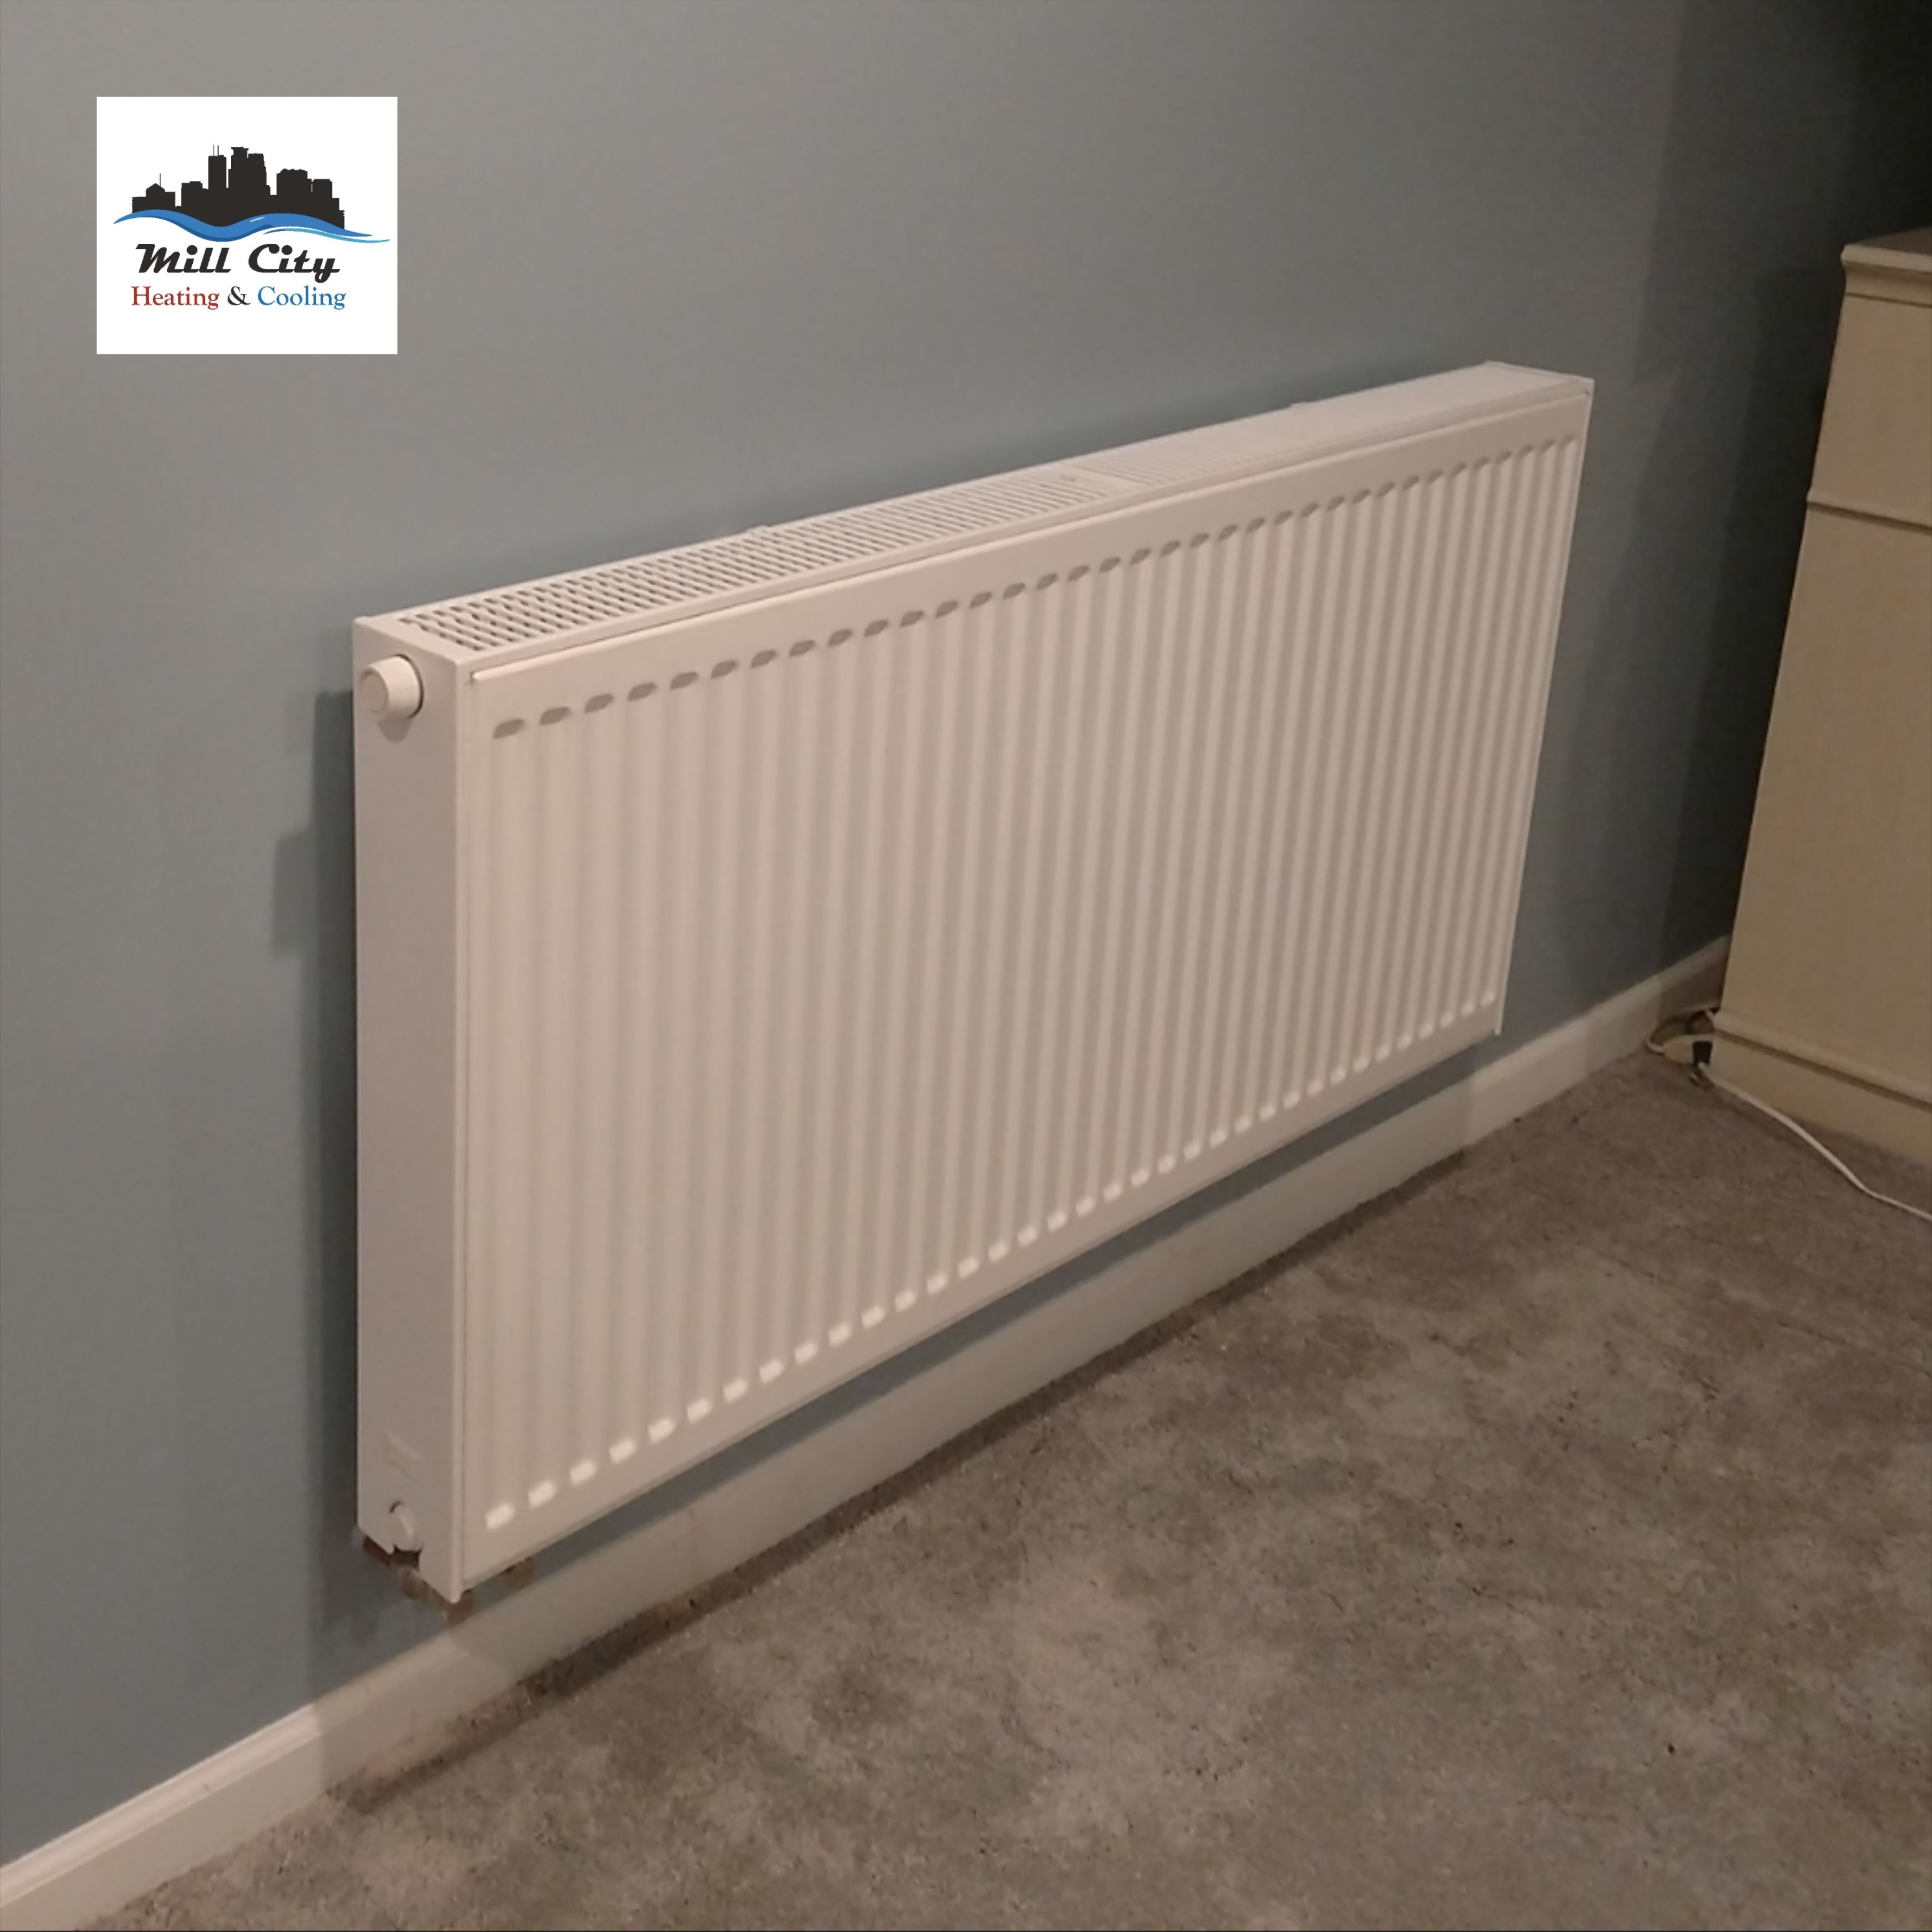 As a licensed bonded and insured heating contractor in